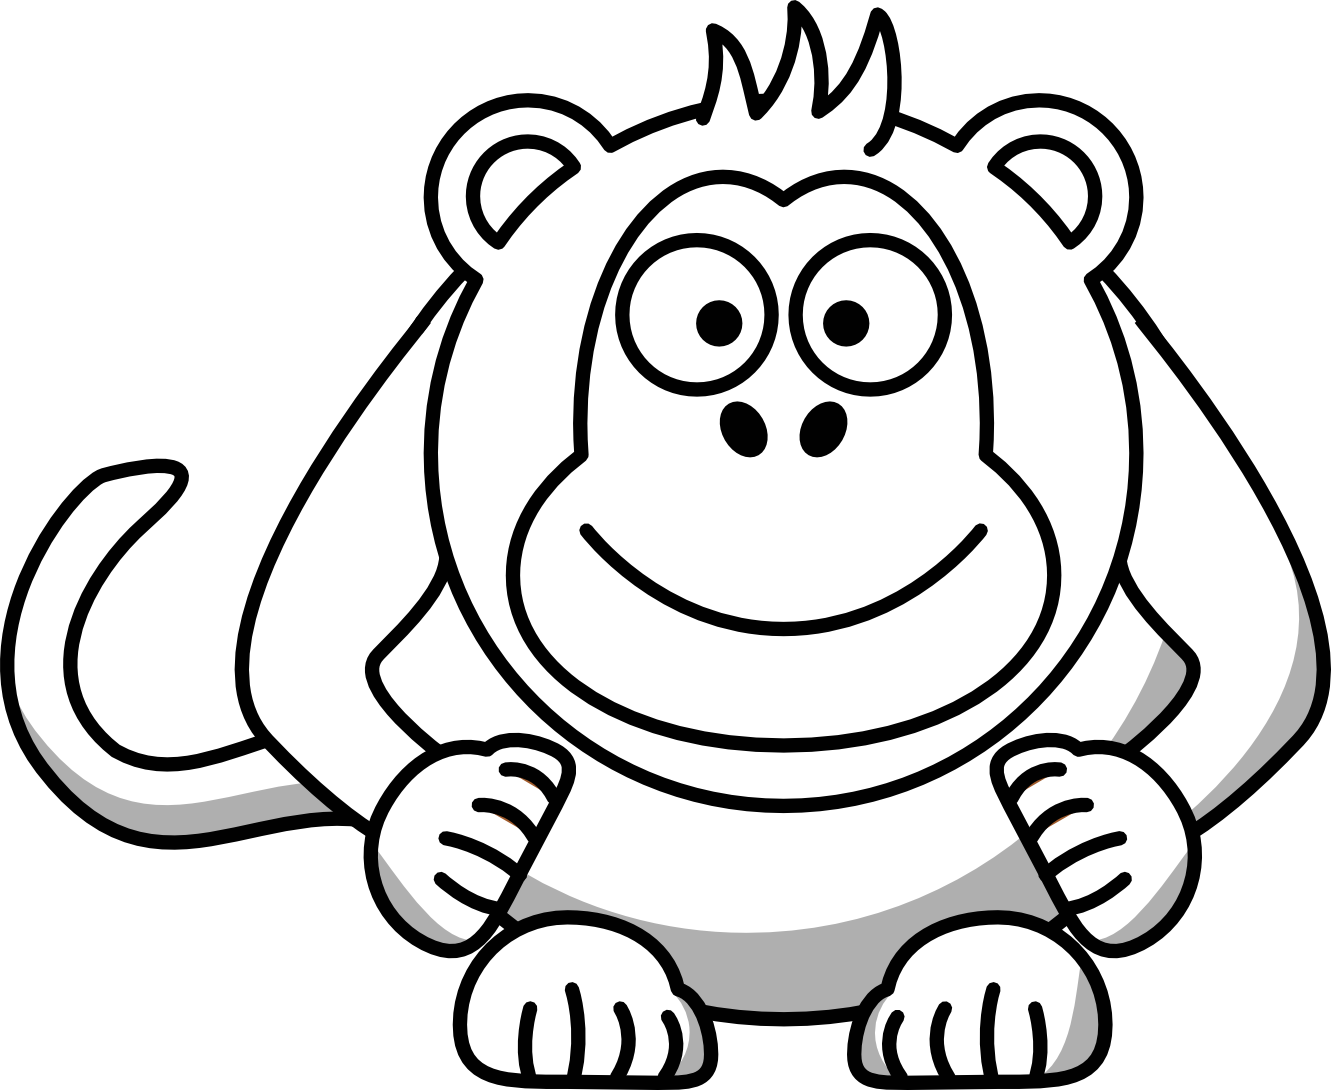 Baboon clipart black and white And Free Art Panda Images